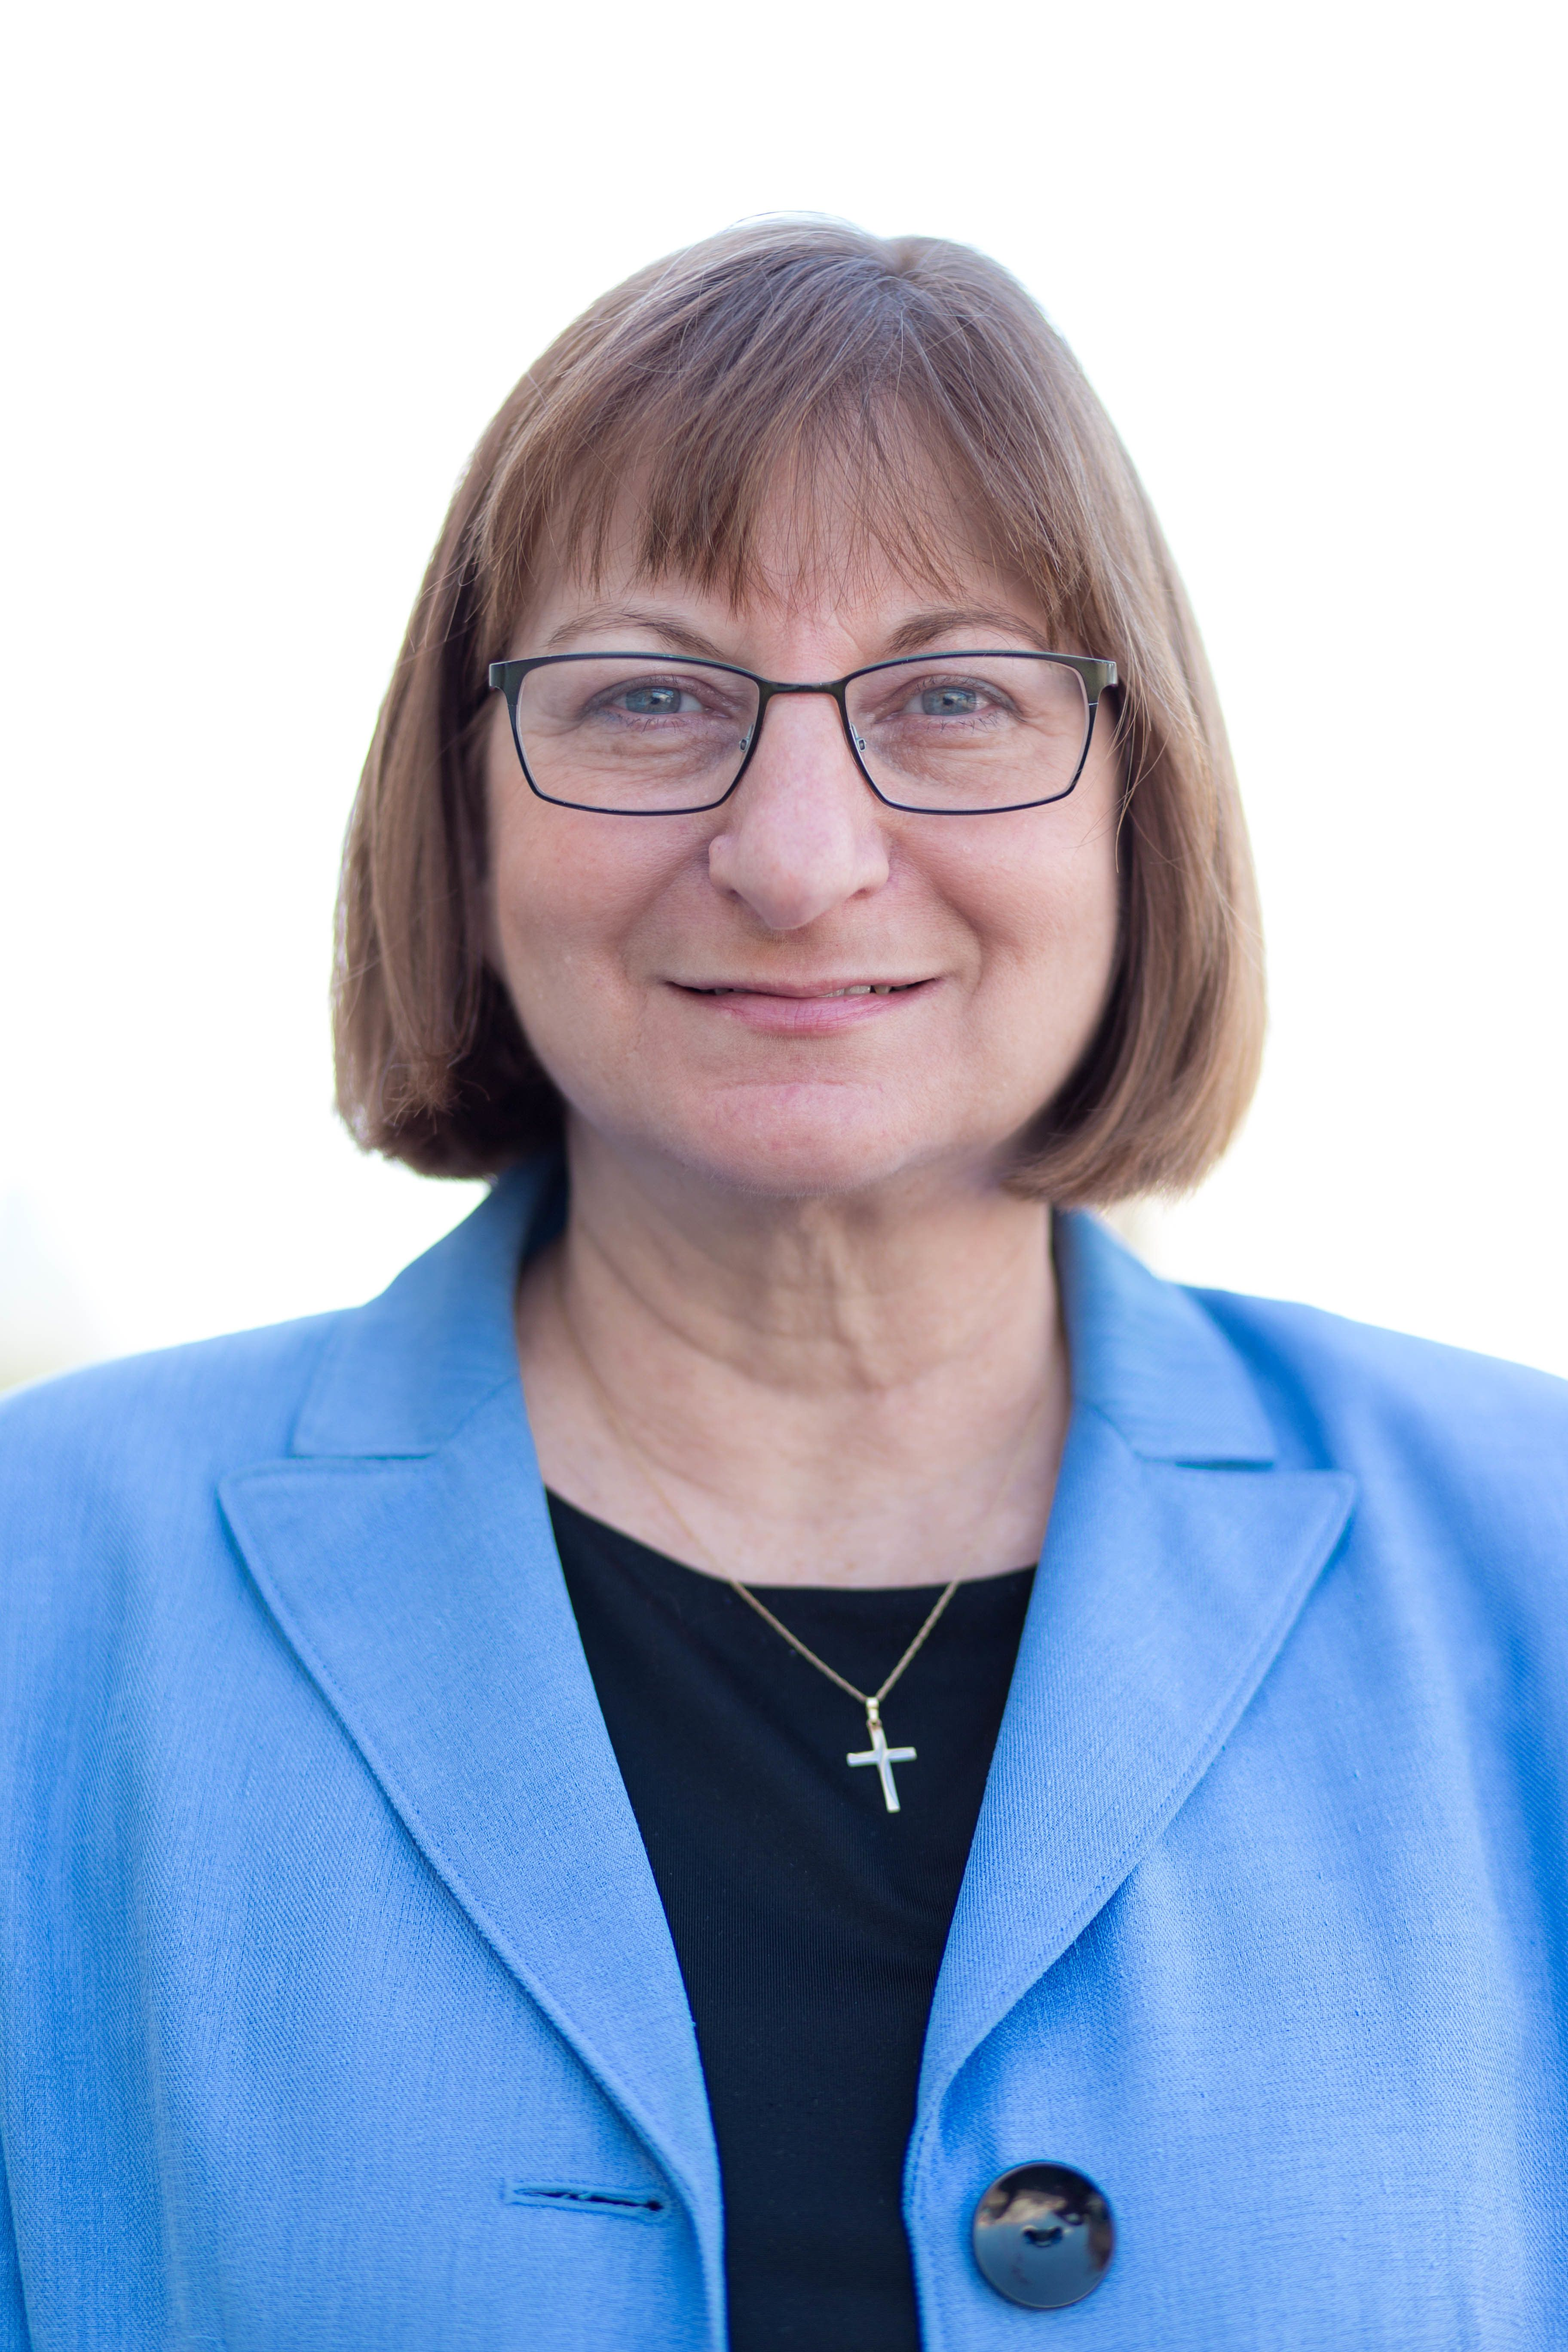 Jane Clementi is the co-founder of the Tyler Clementi Foundation.